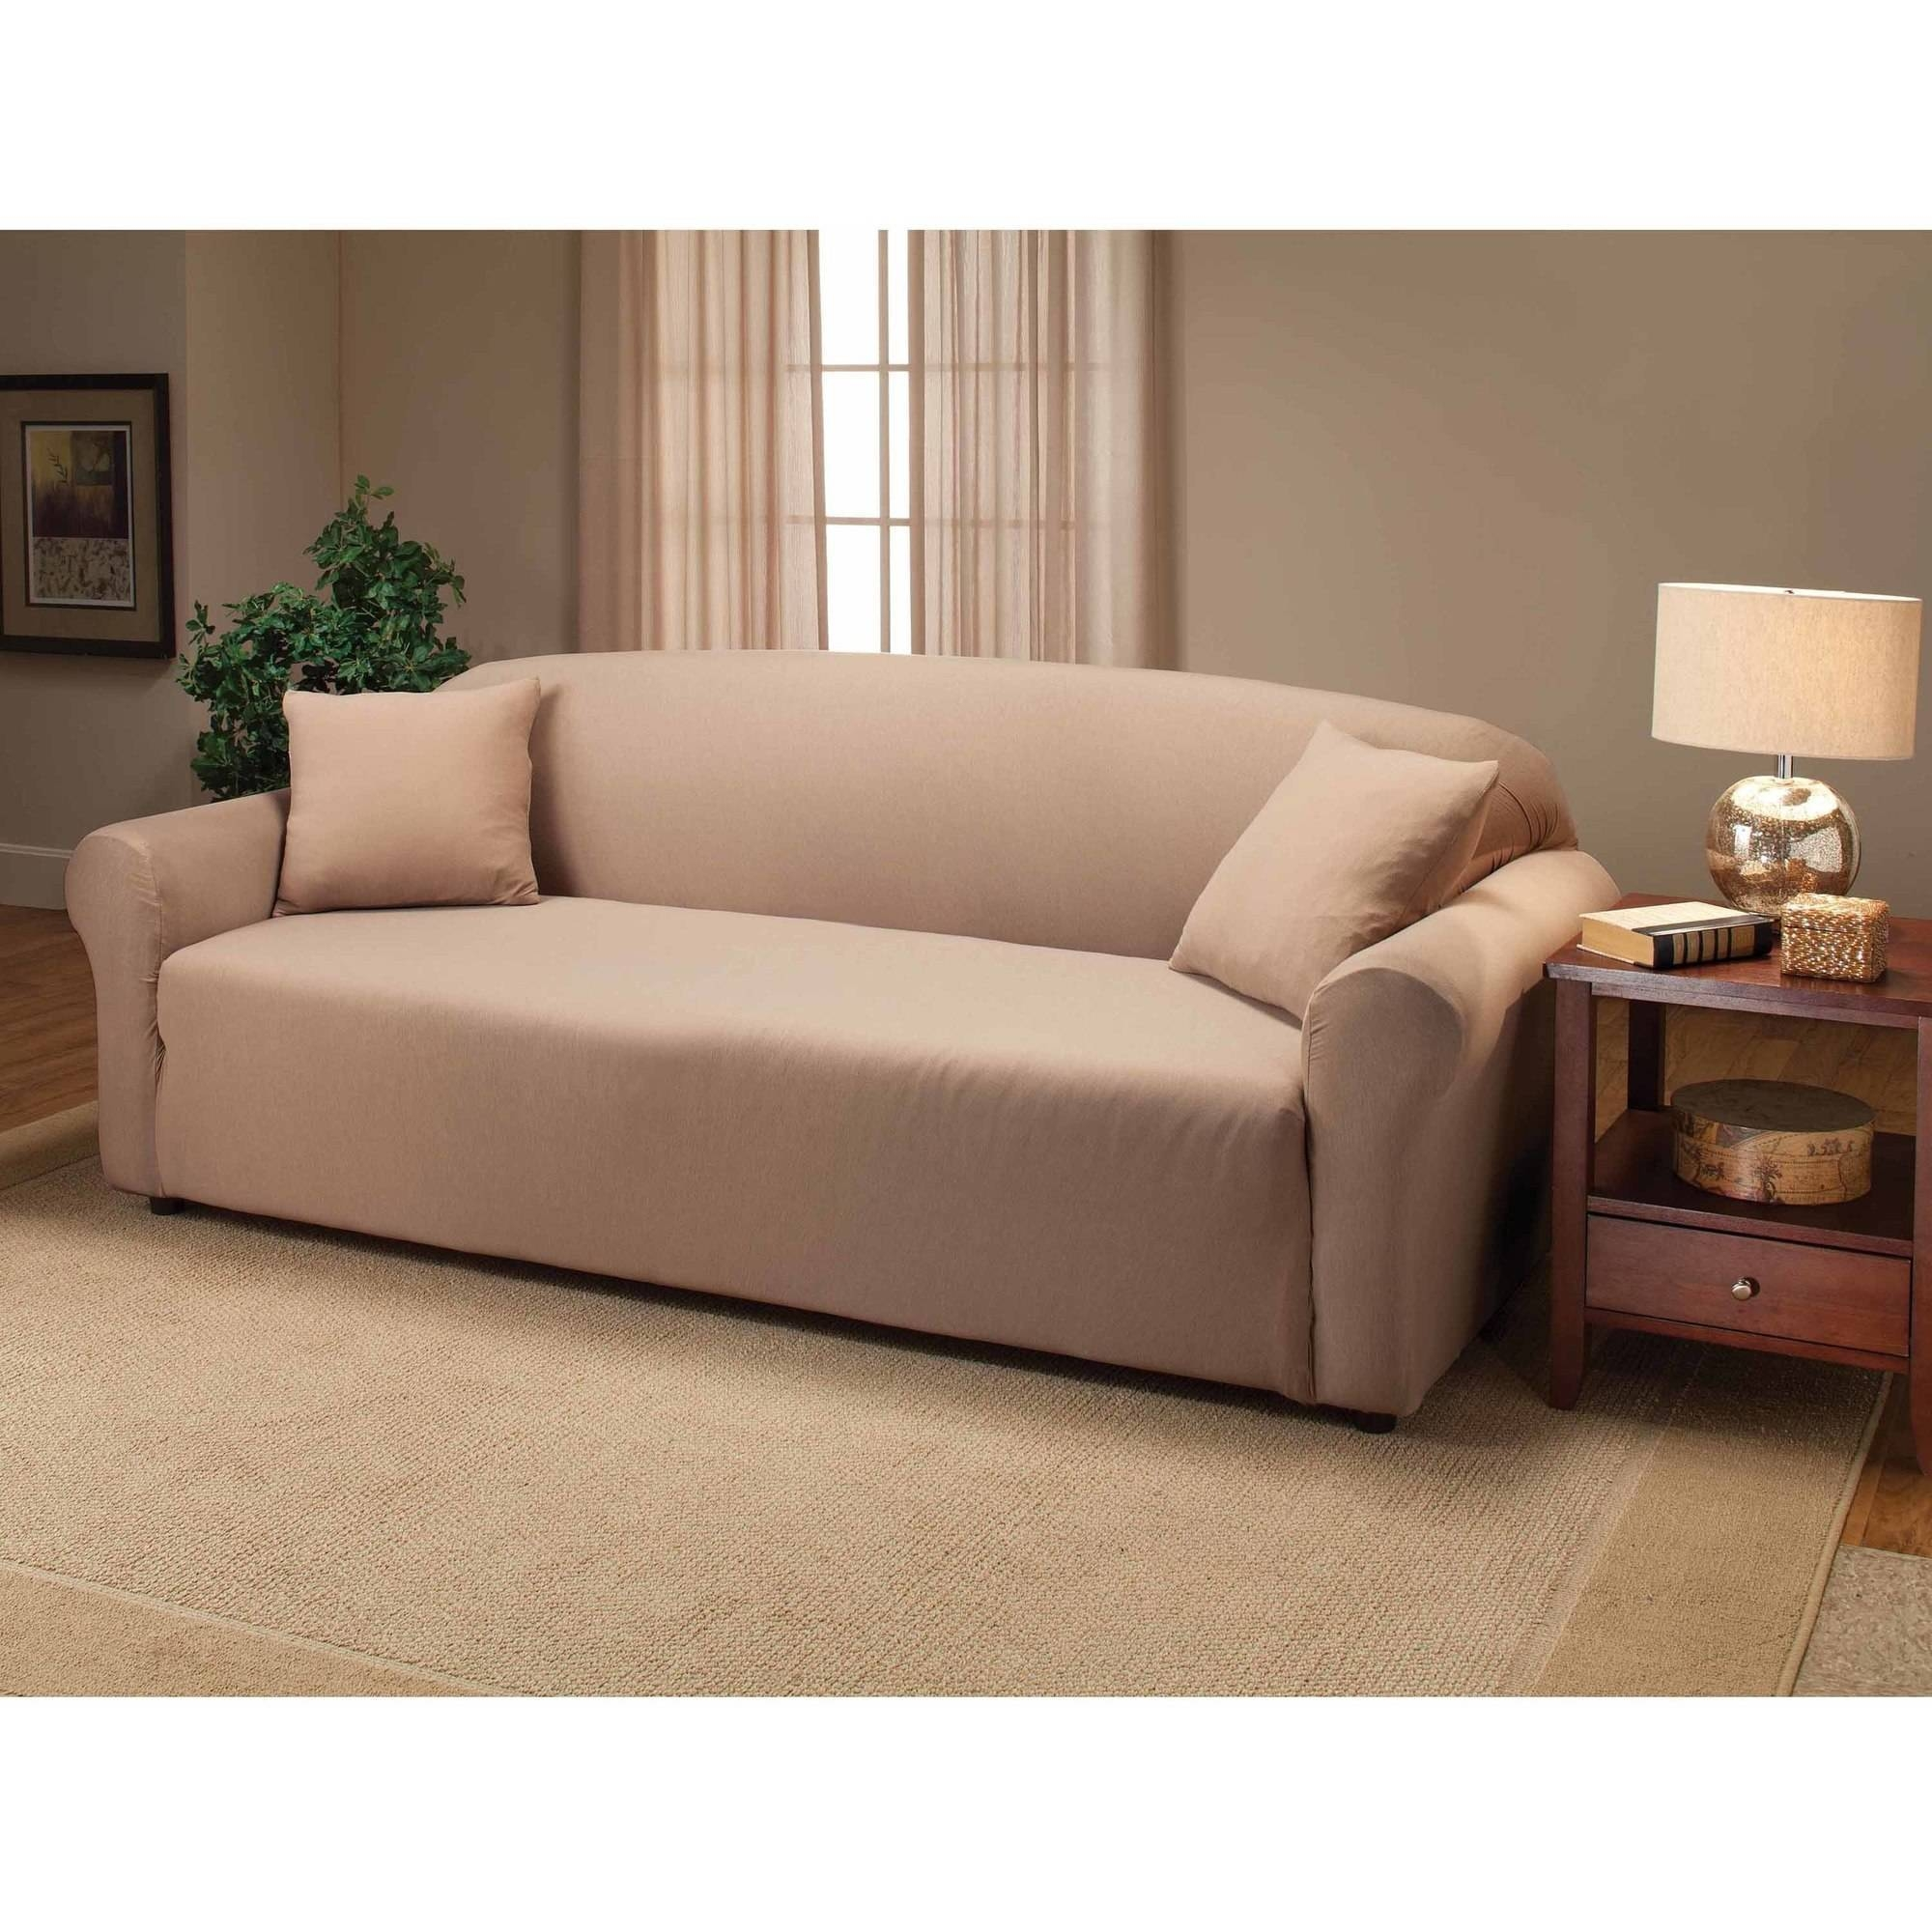 Jersey Stretch Sofa Slipcover - Walmart for Stretch Slipcover Sofas (Image 6 of 15)